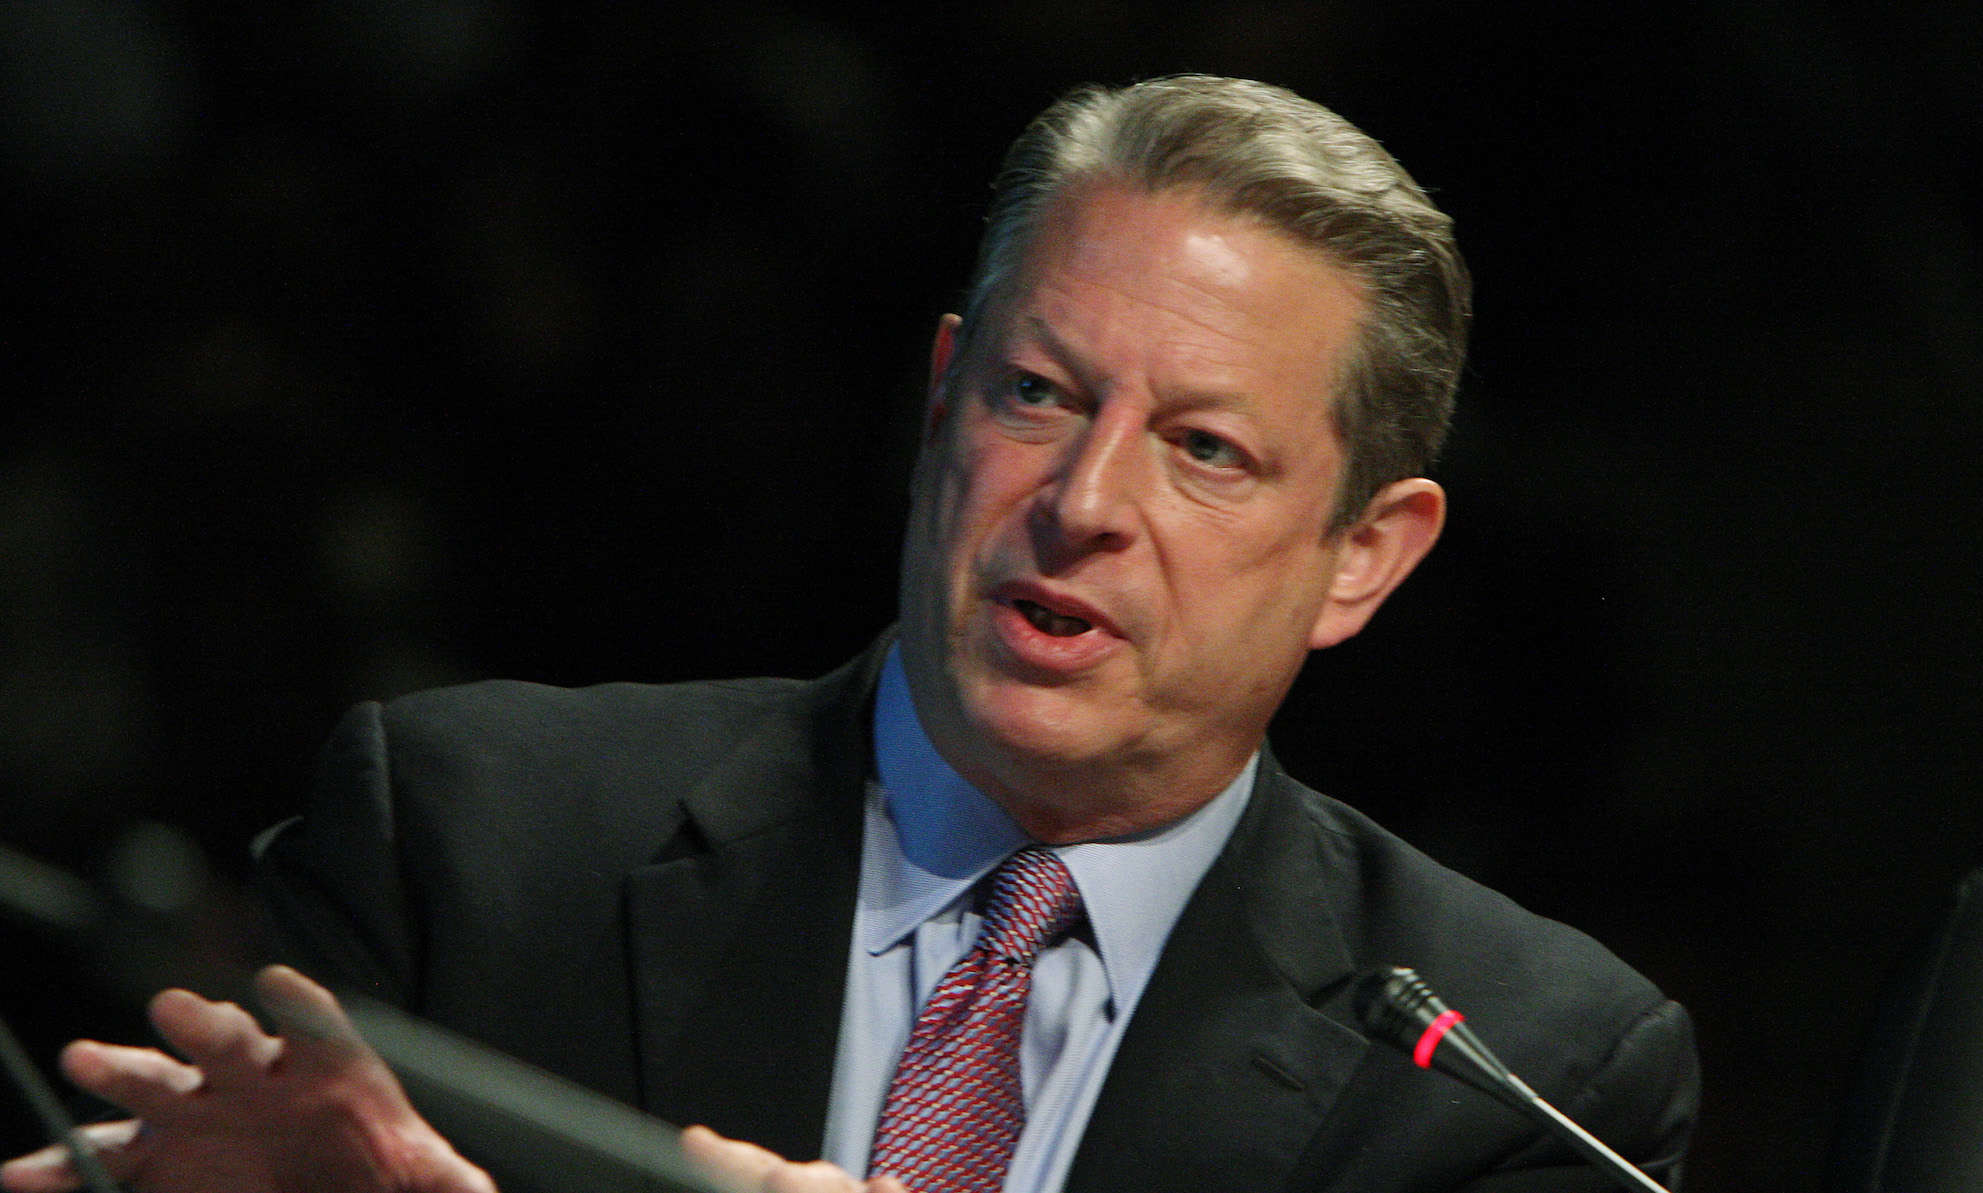 Al Gore at the 2009 National Clean Energy Summit.